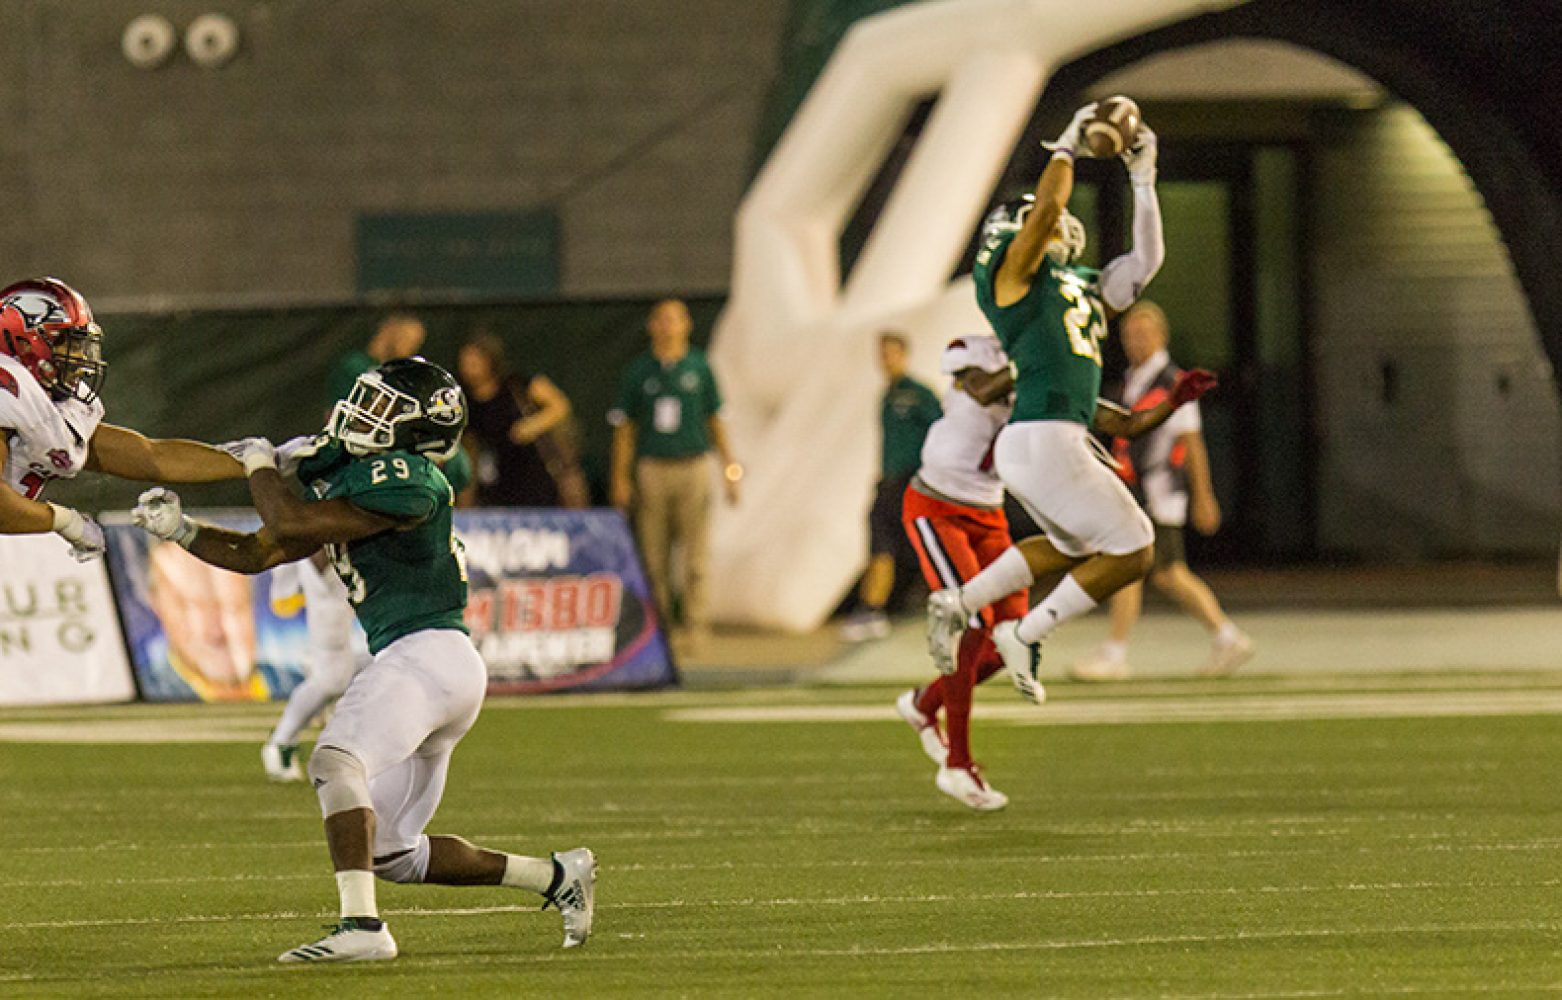 Sacramento State freshman linebacker Miguel Garcia intercepts the ball from the University of the Incarnate Word Saturday, Sept. 9 at Hornet Stadium. Sac State won 56-22 and advanced to 1-1 on the season.